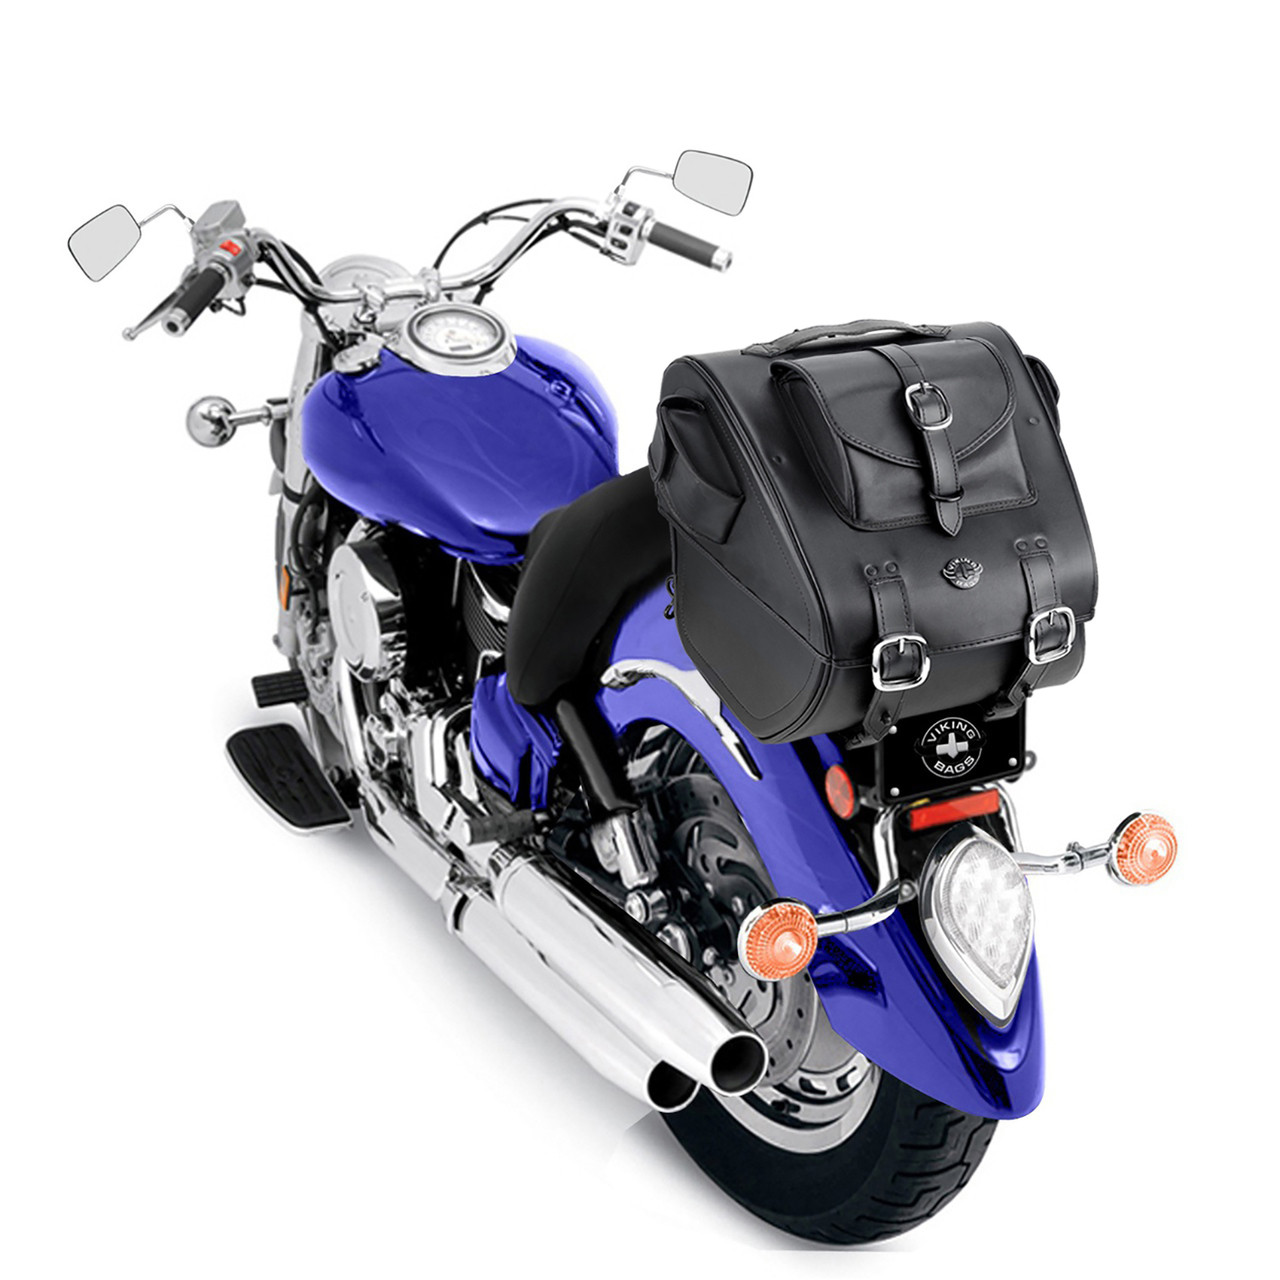 Viking Classic Trunk 3038 Cubic Inches Motorcycle Trunk  on Bike View